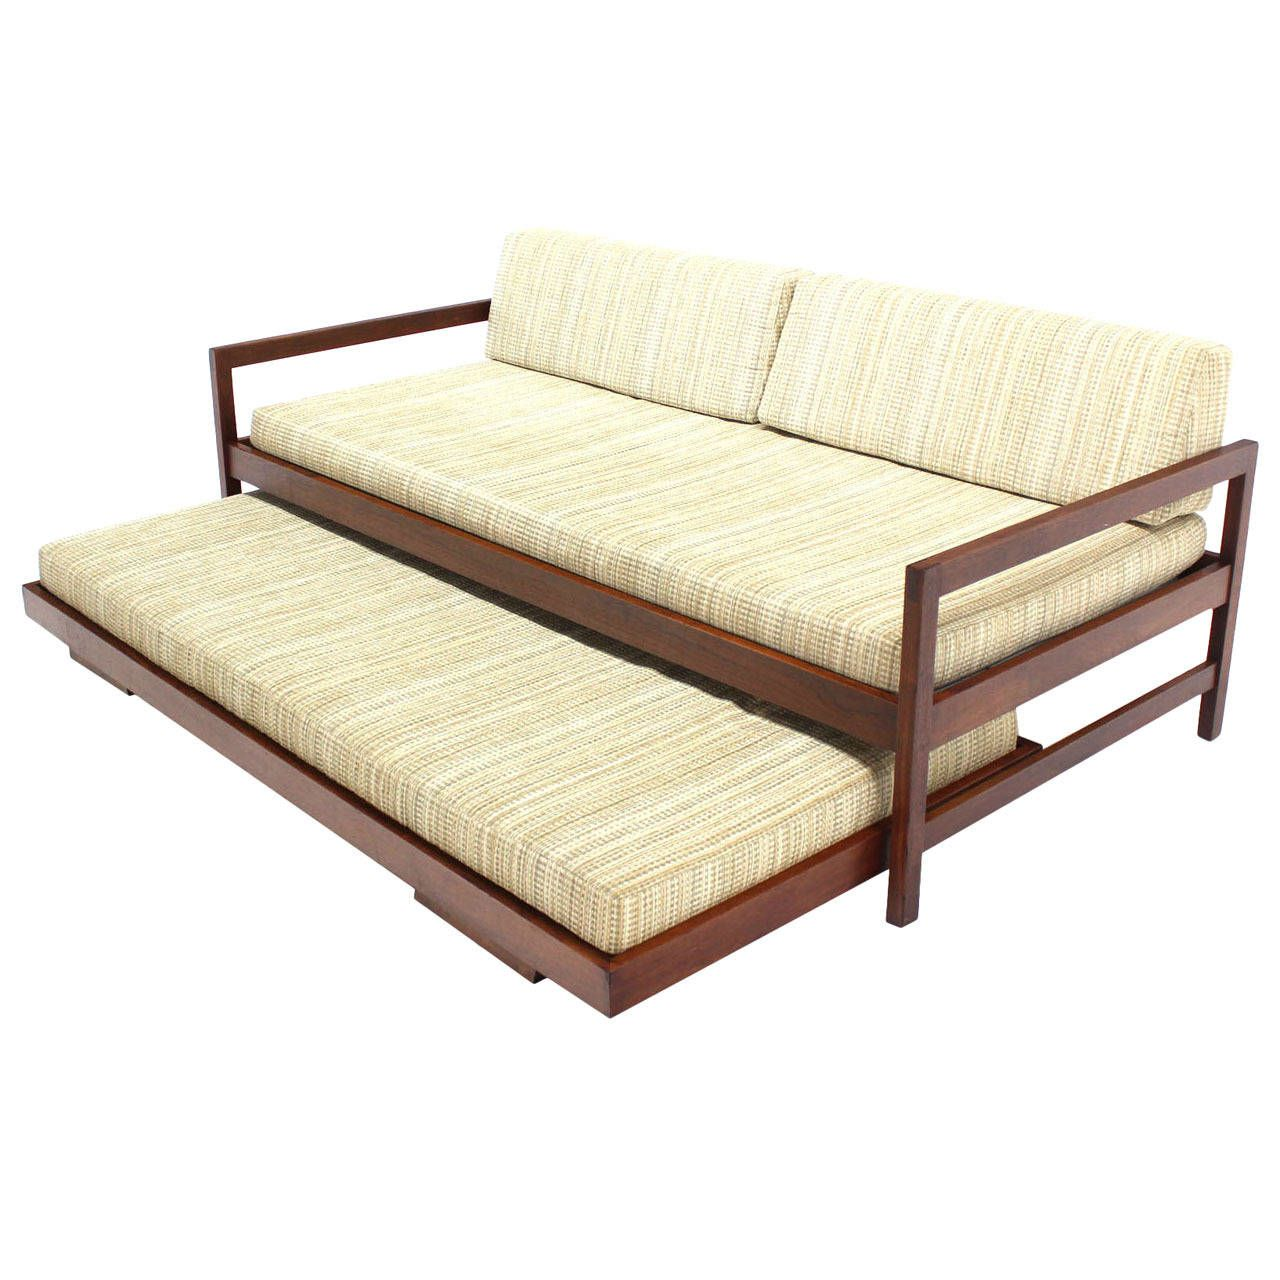 mid century twin size daybed frame with trundle design decofurnish full size iron daybed frame diy